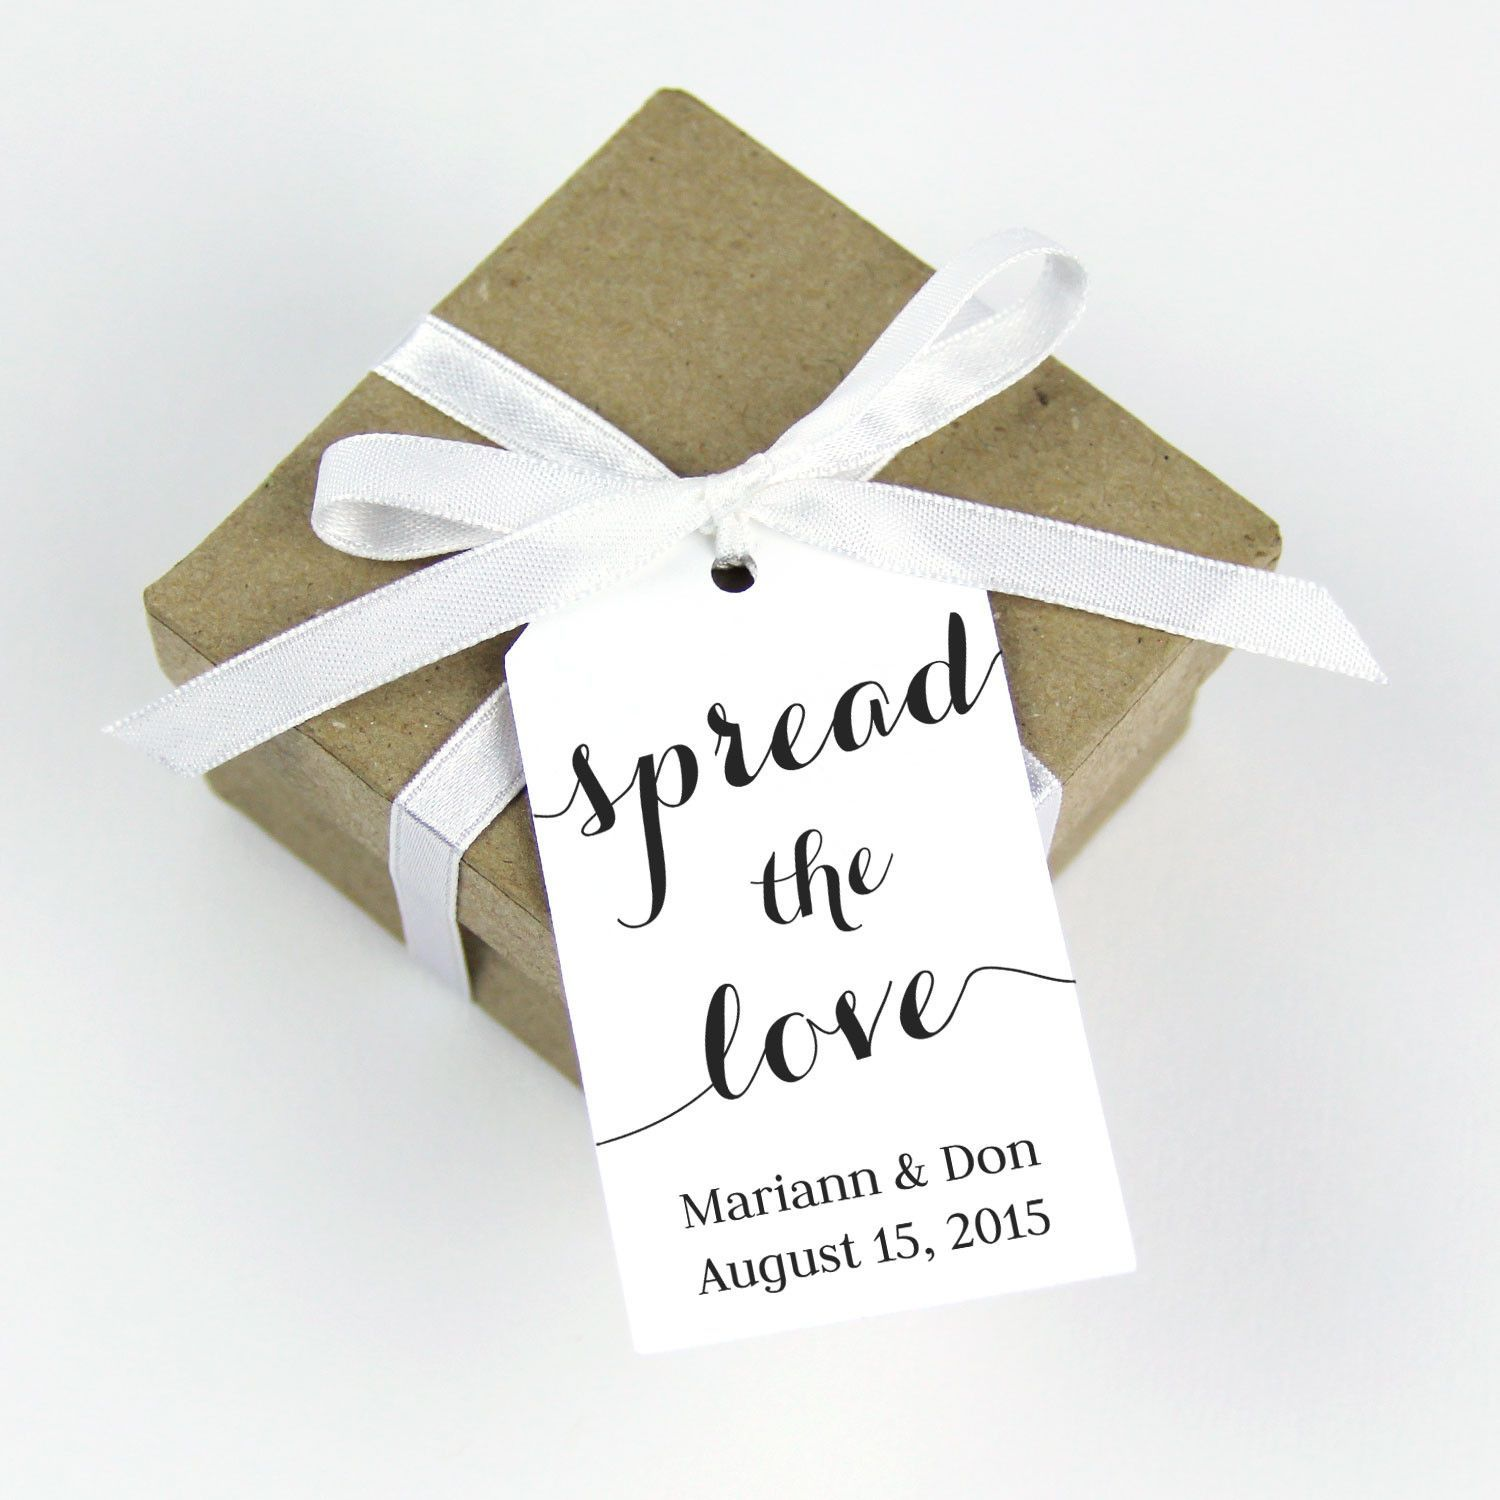 spread the love wedding favor tag | Wedding Favor Tags | Pinterest ...